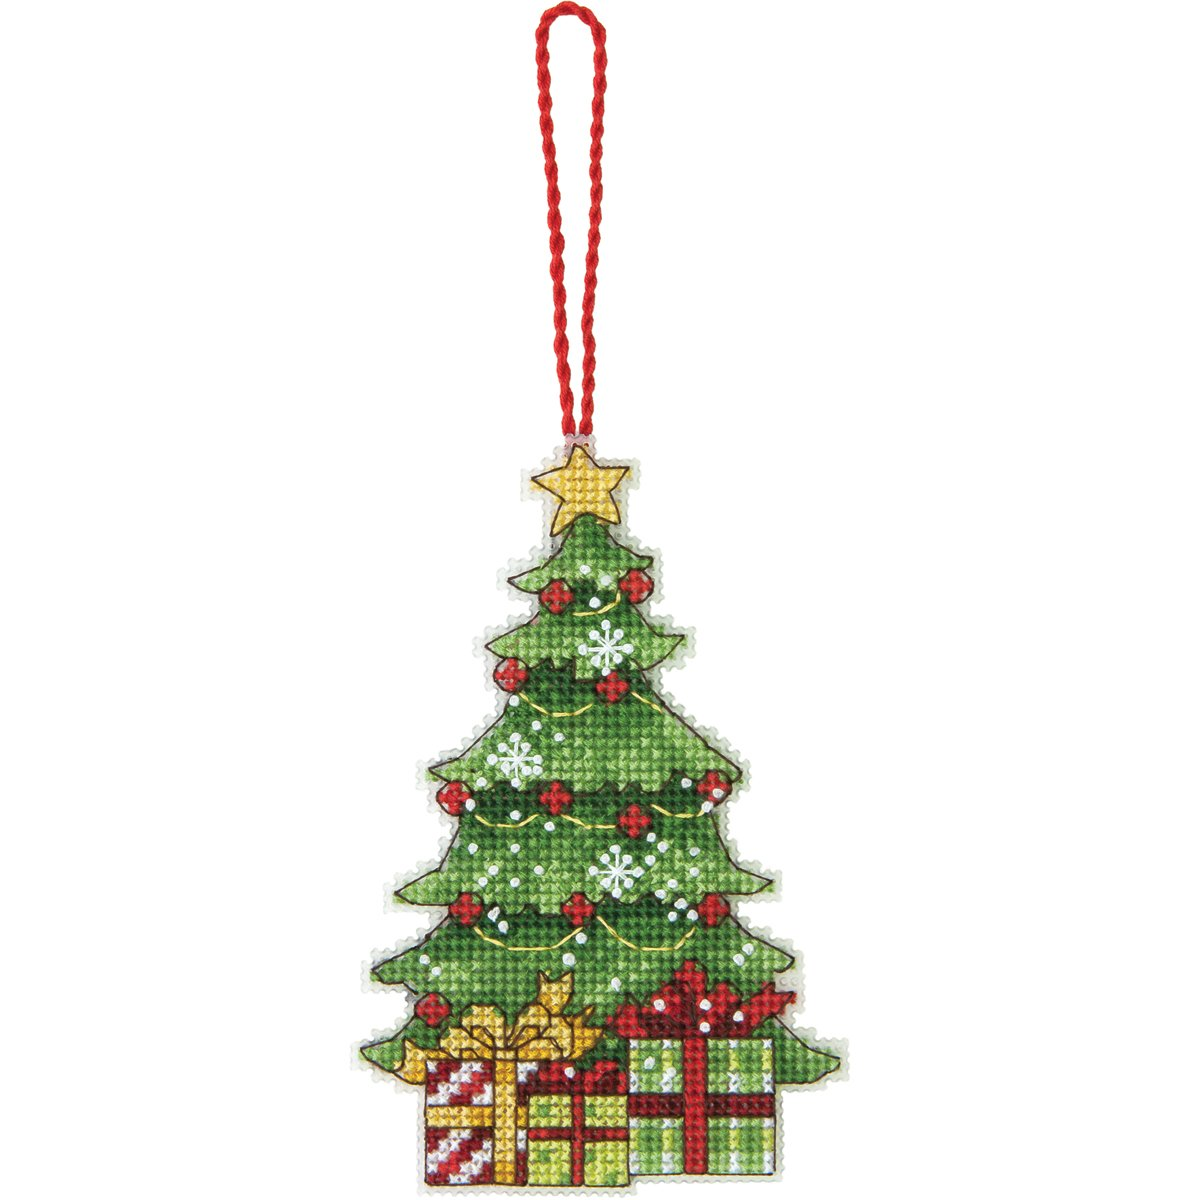 amazoncom dimensions counted cross stitch tree ornament arts crafts sewing - Christmas Tree Ornament